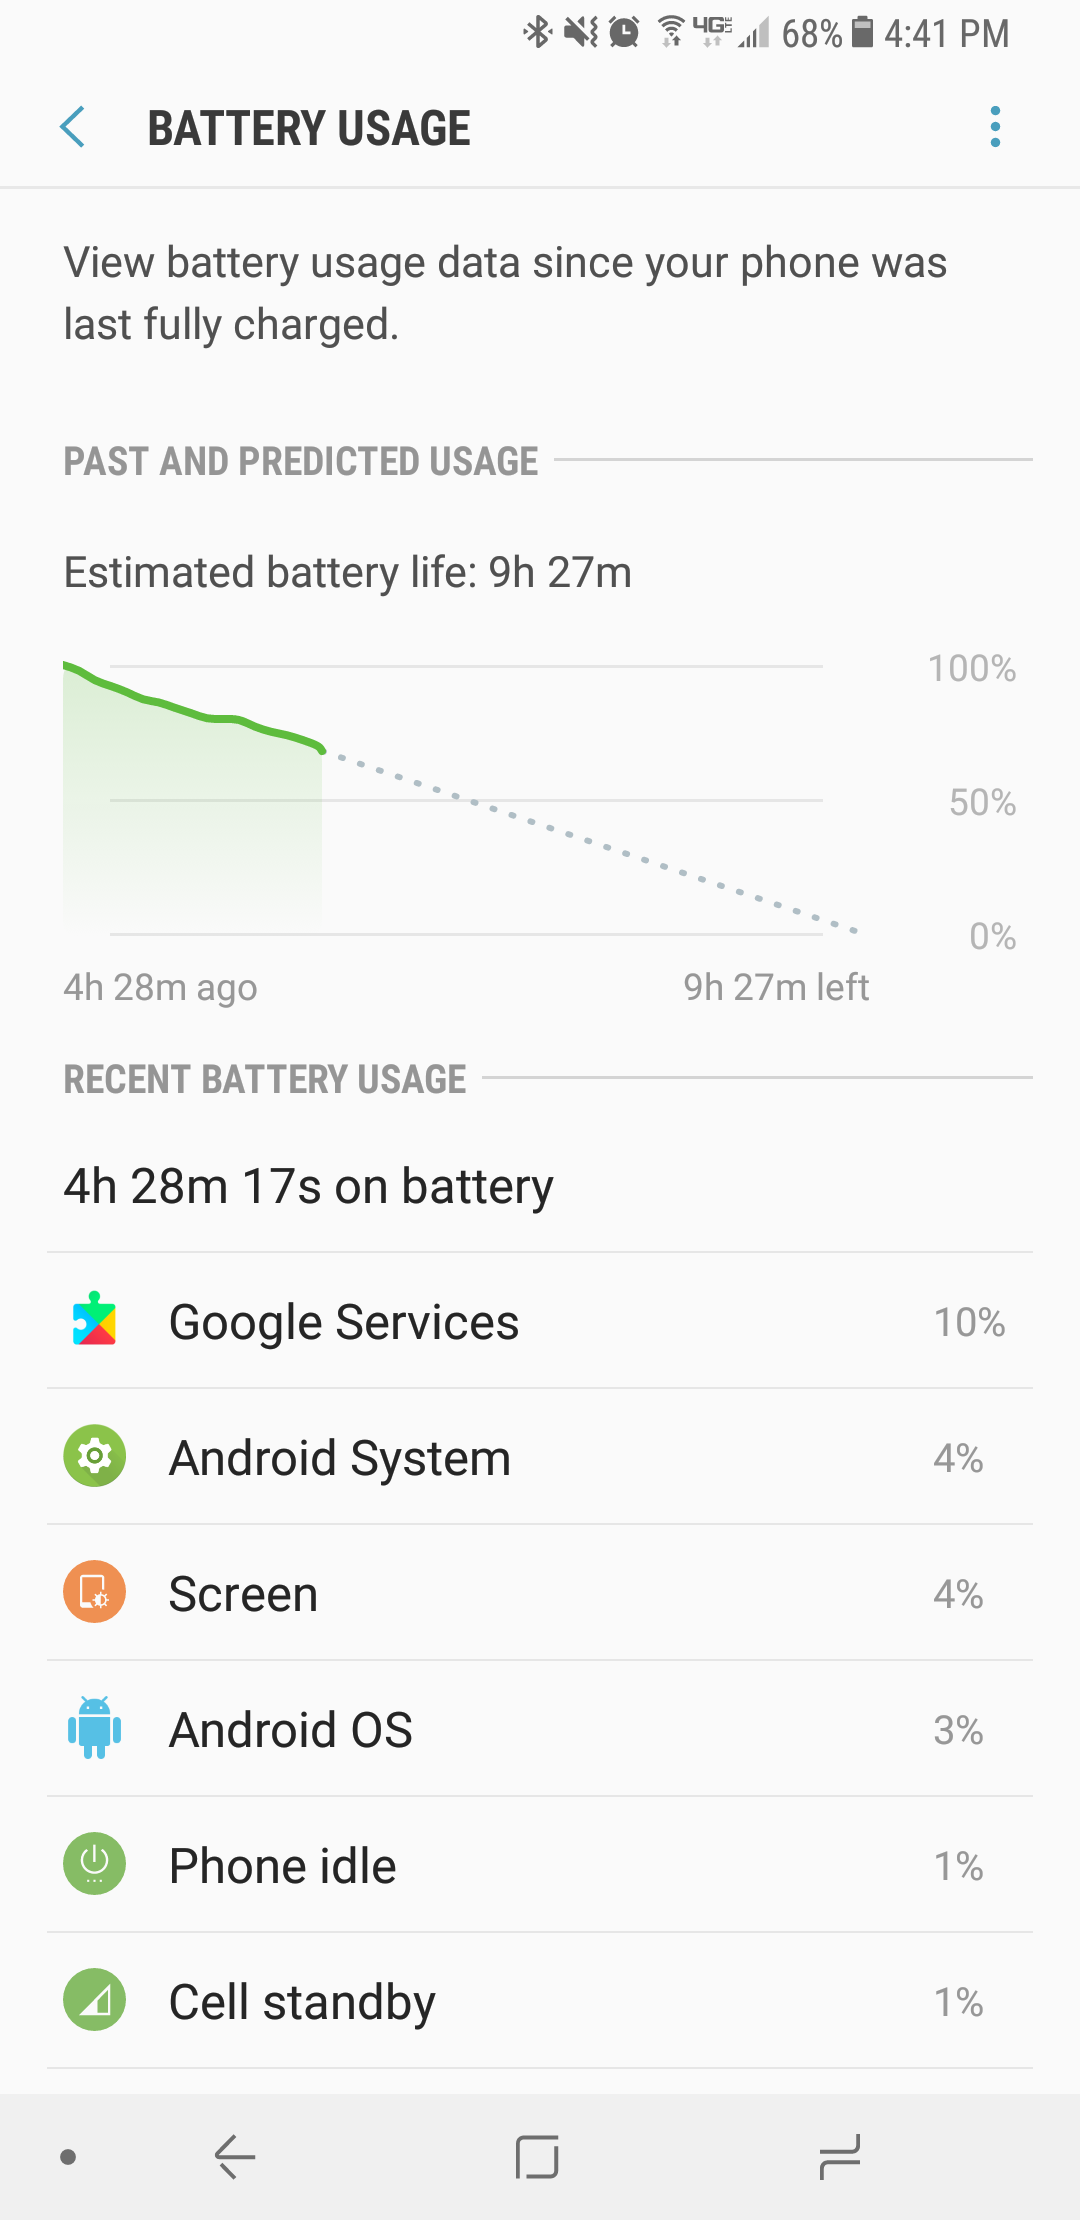 I Woke Up This Morning With The Cpu Usage Warning And Google Play Services Was At 25 While Sleeping